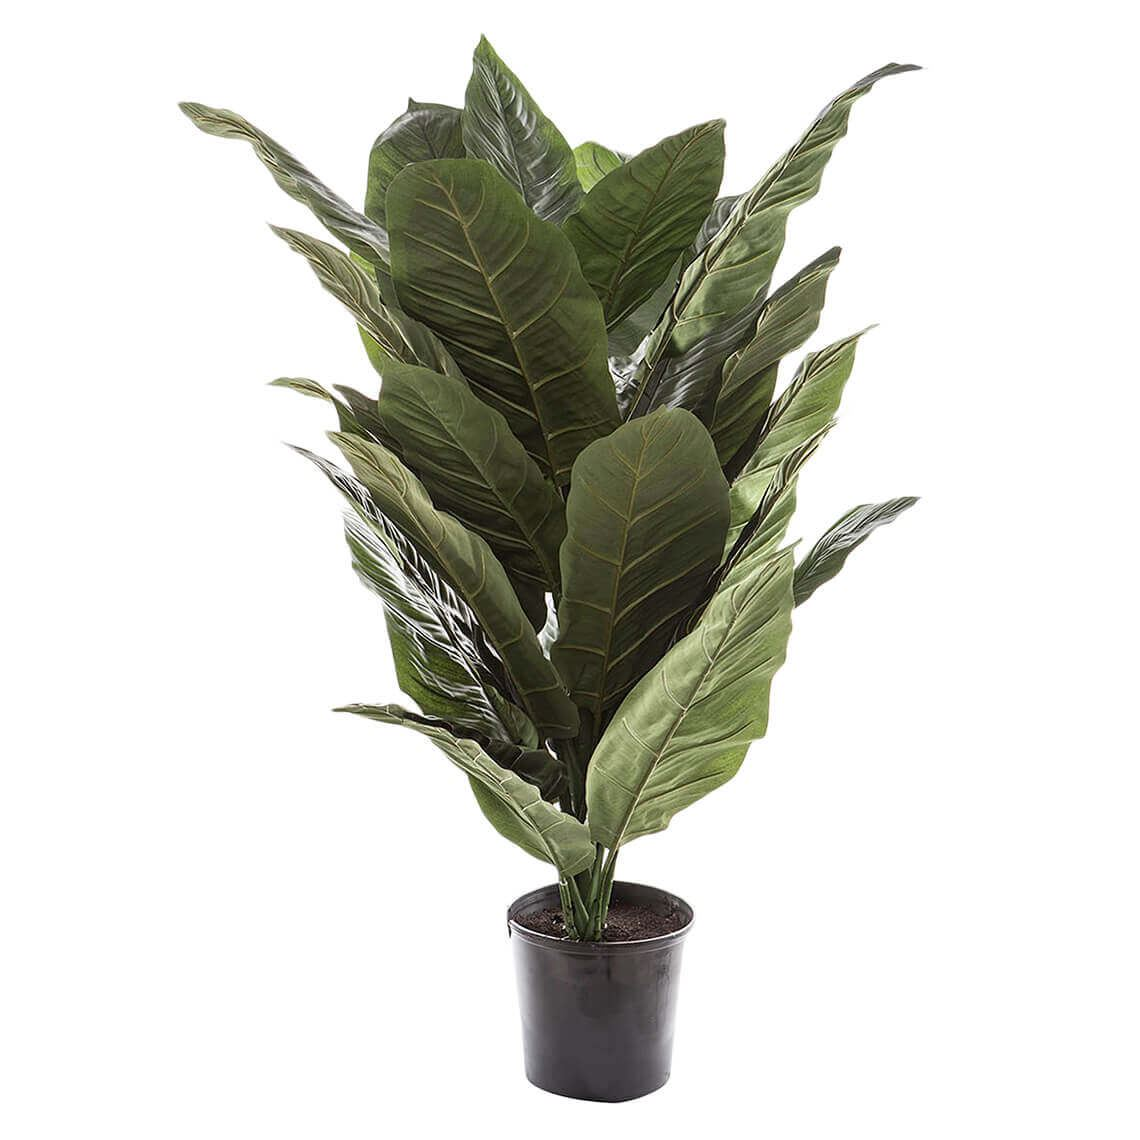 Spathiphyllum Giant Artificial Flower Size W 73cm x D 78cm x H 128cm in Green Freedom by Freedom, a Plants for sale on Style Sourcebook